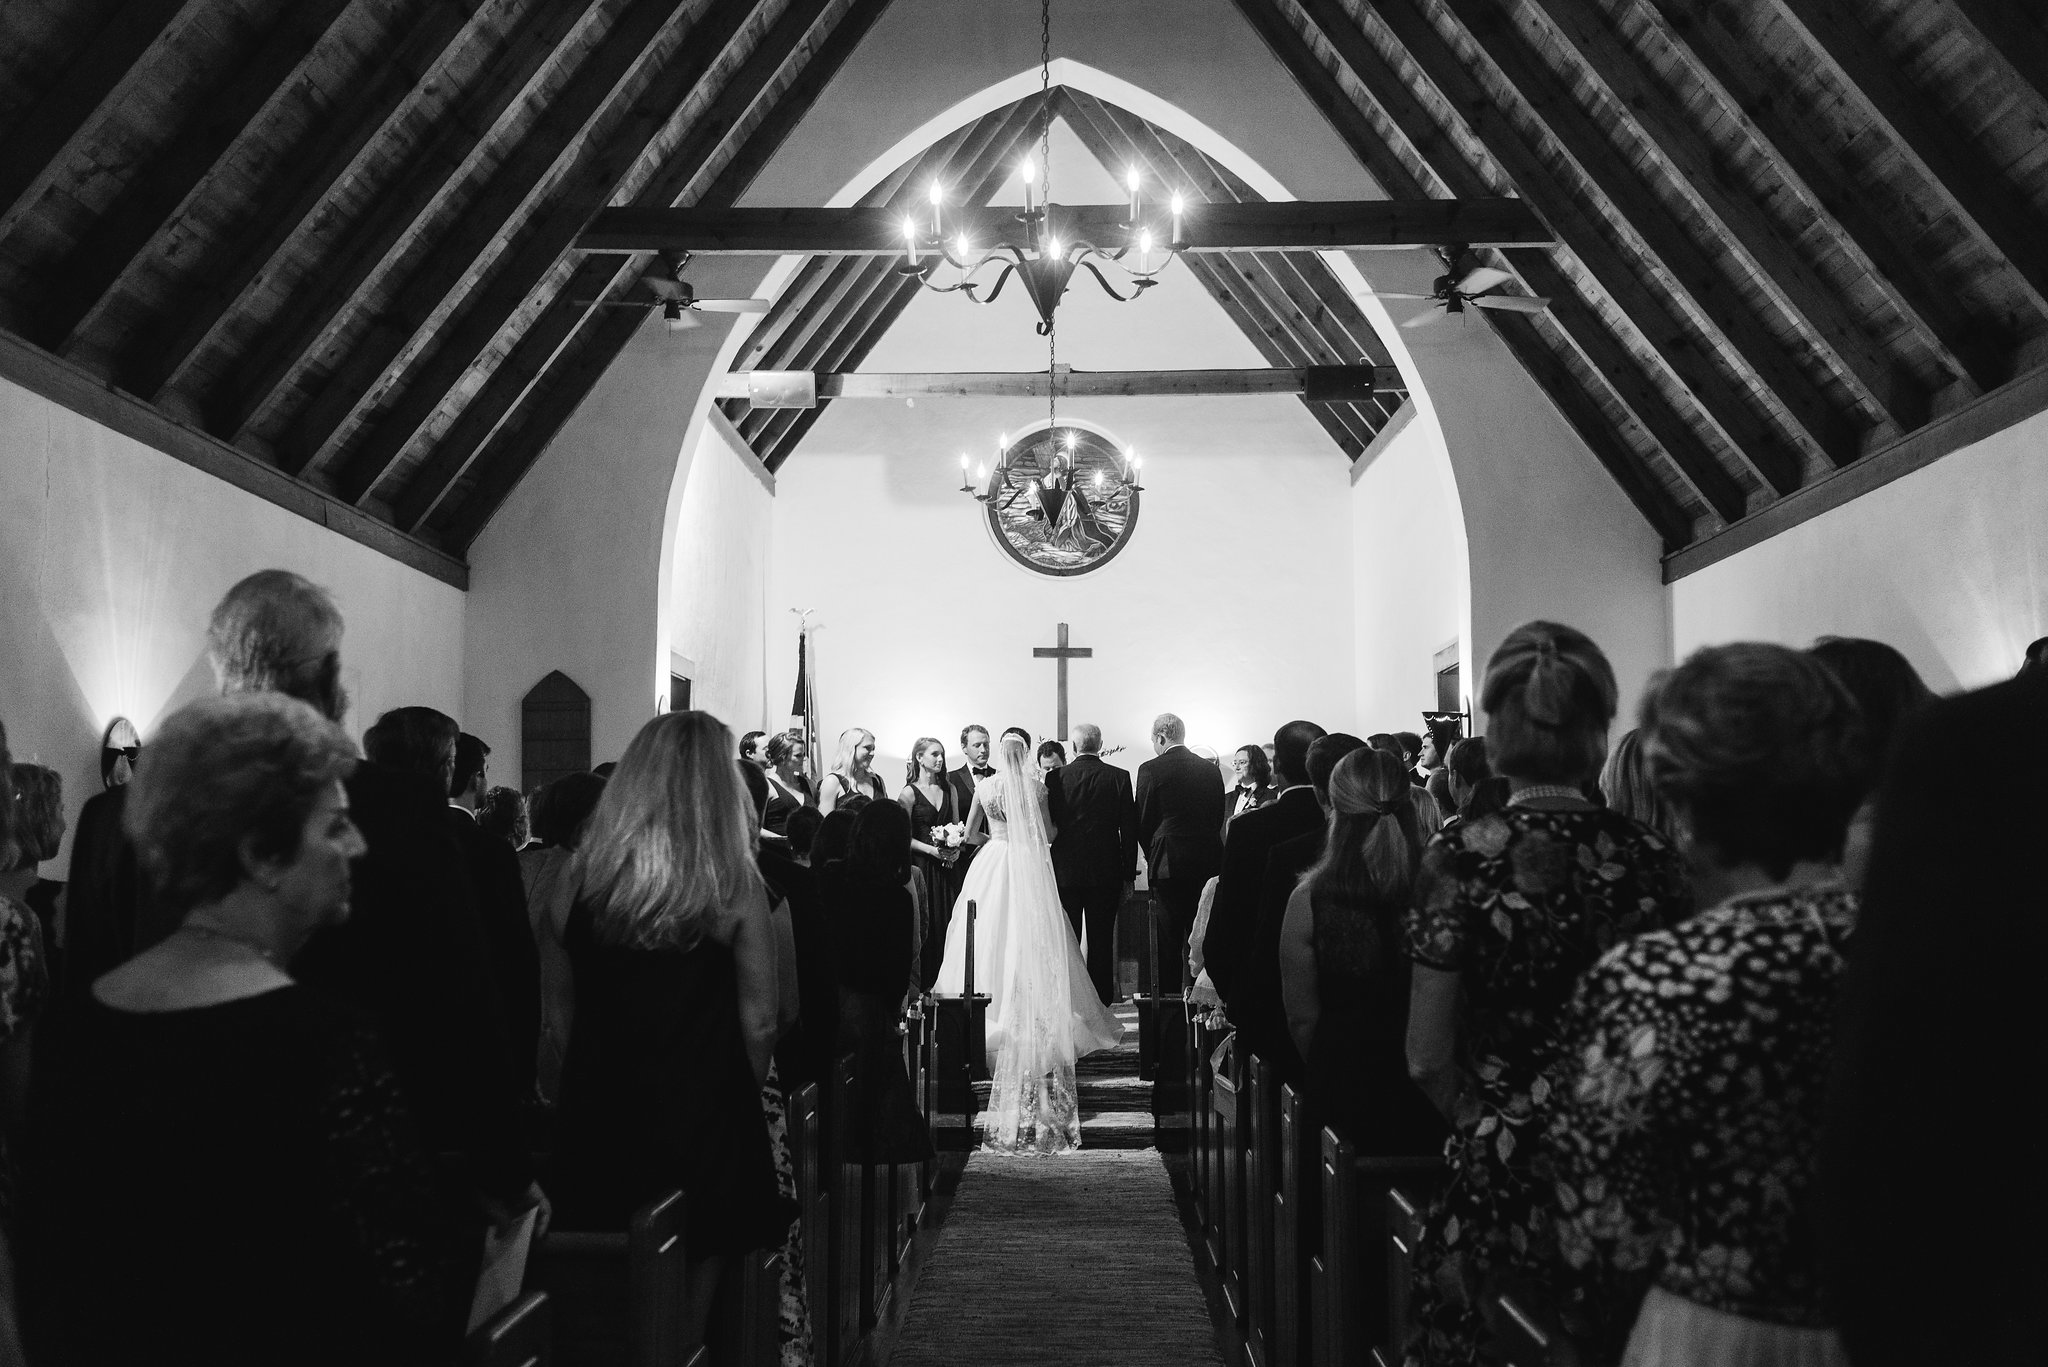 North Carolina Wedding, Events by Reagan, Destination Wedding Planner, Church ceremony